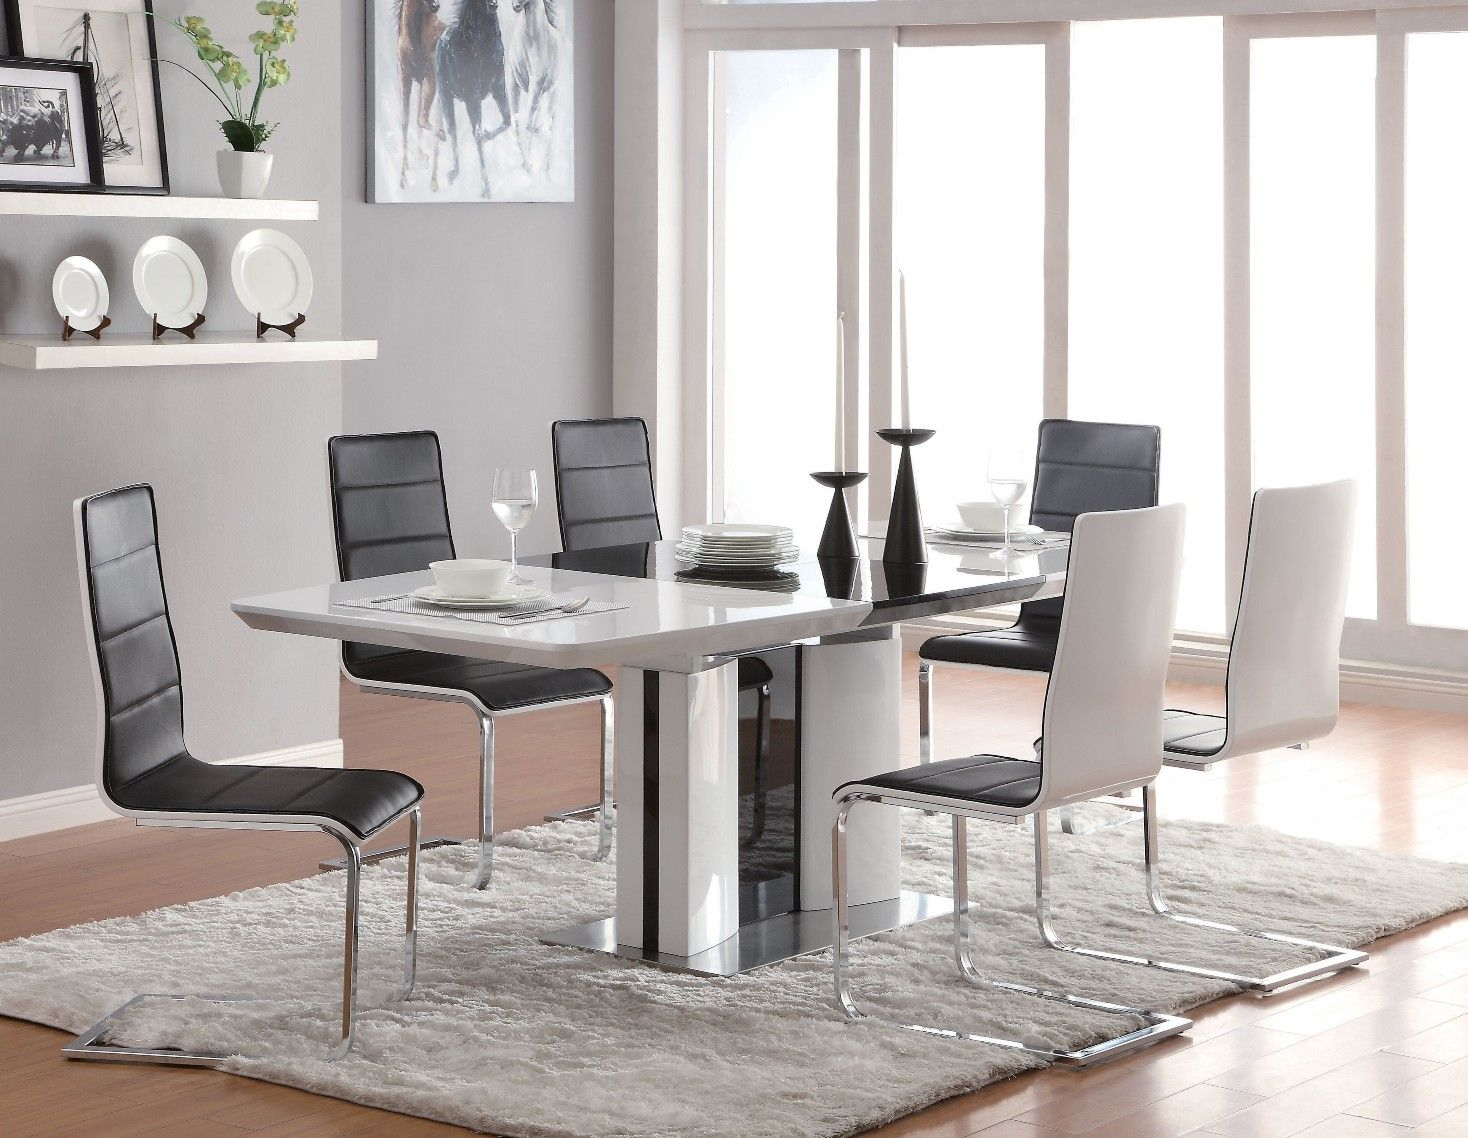 274 best Dining Sets images on Pinterest   Table settings, Dining ...